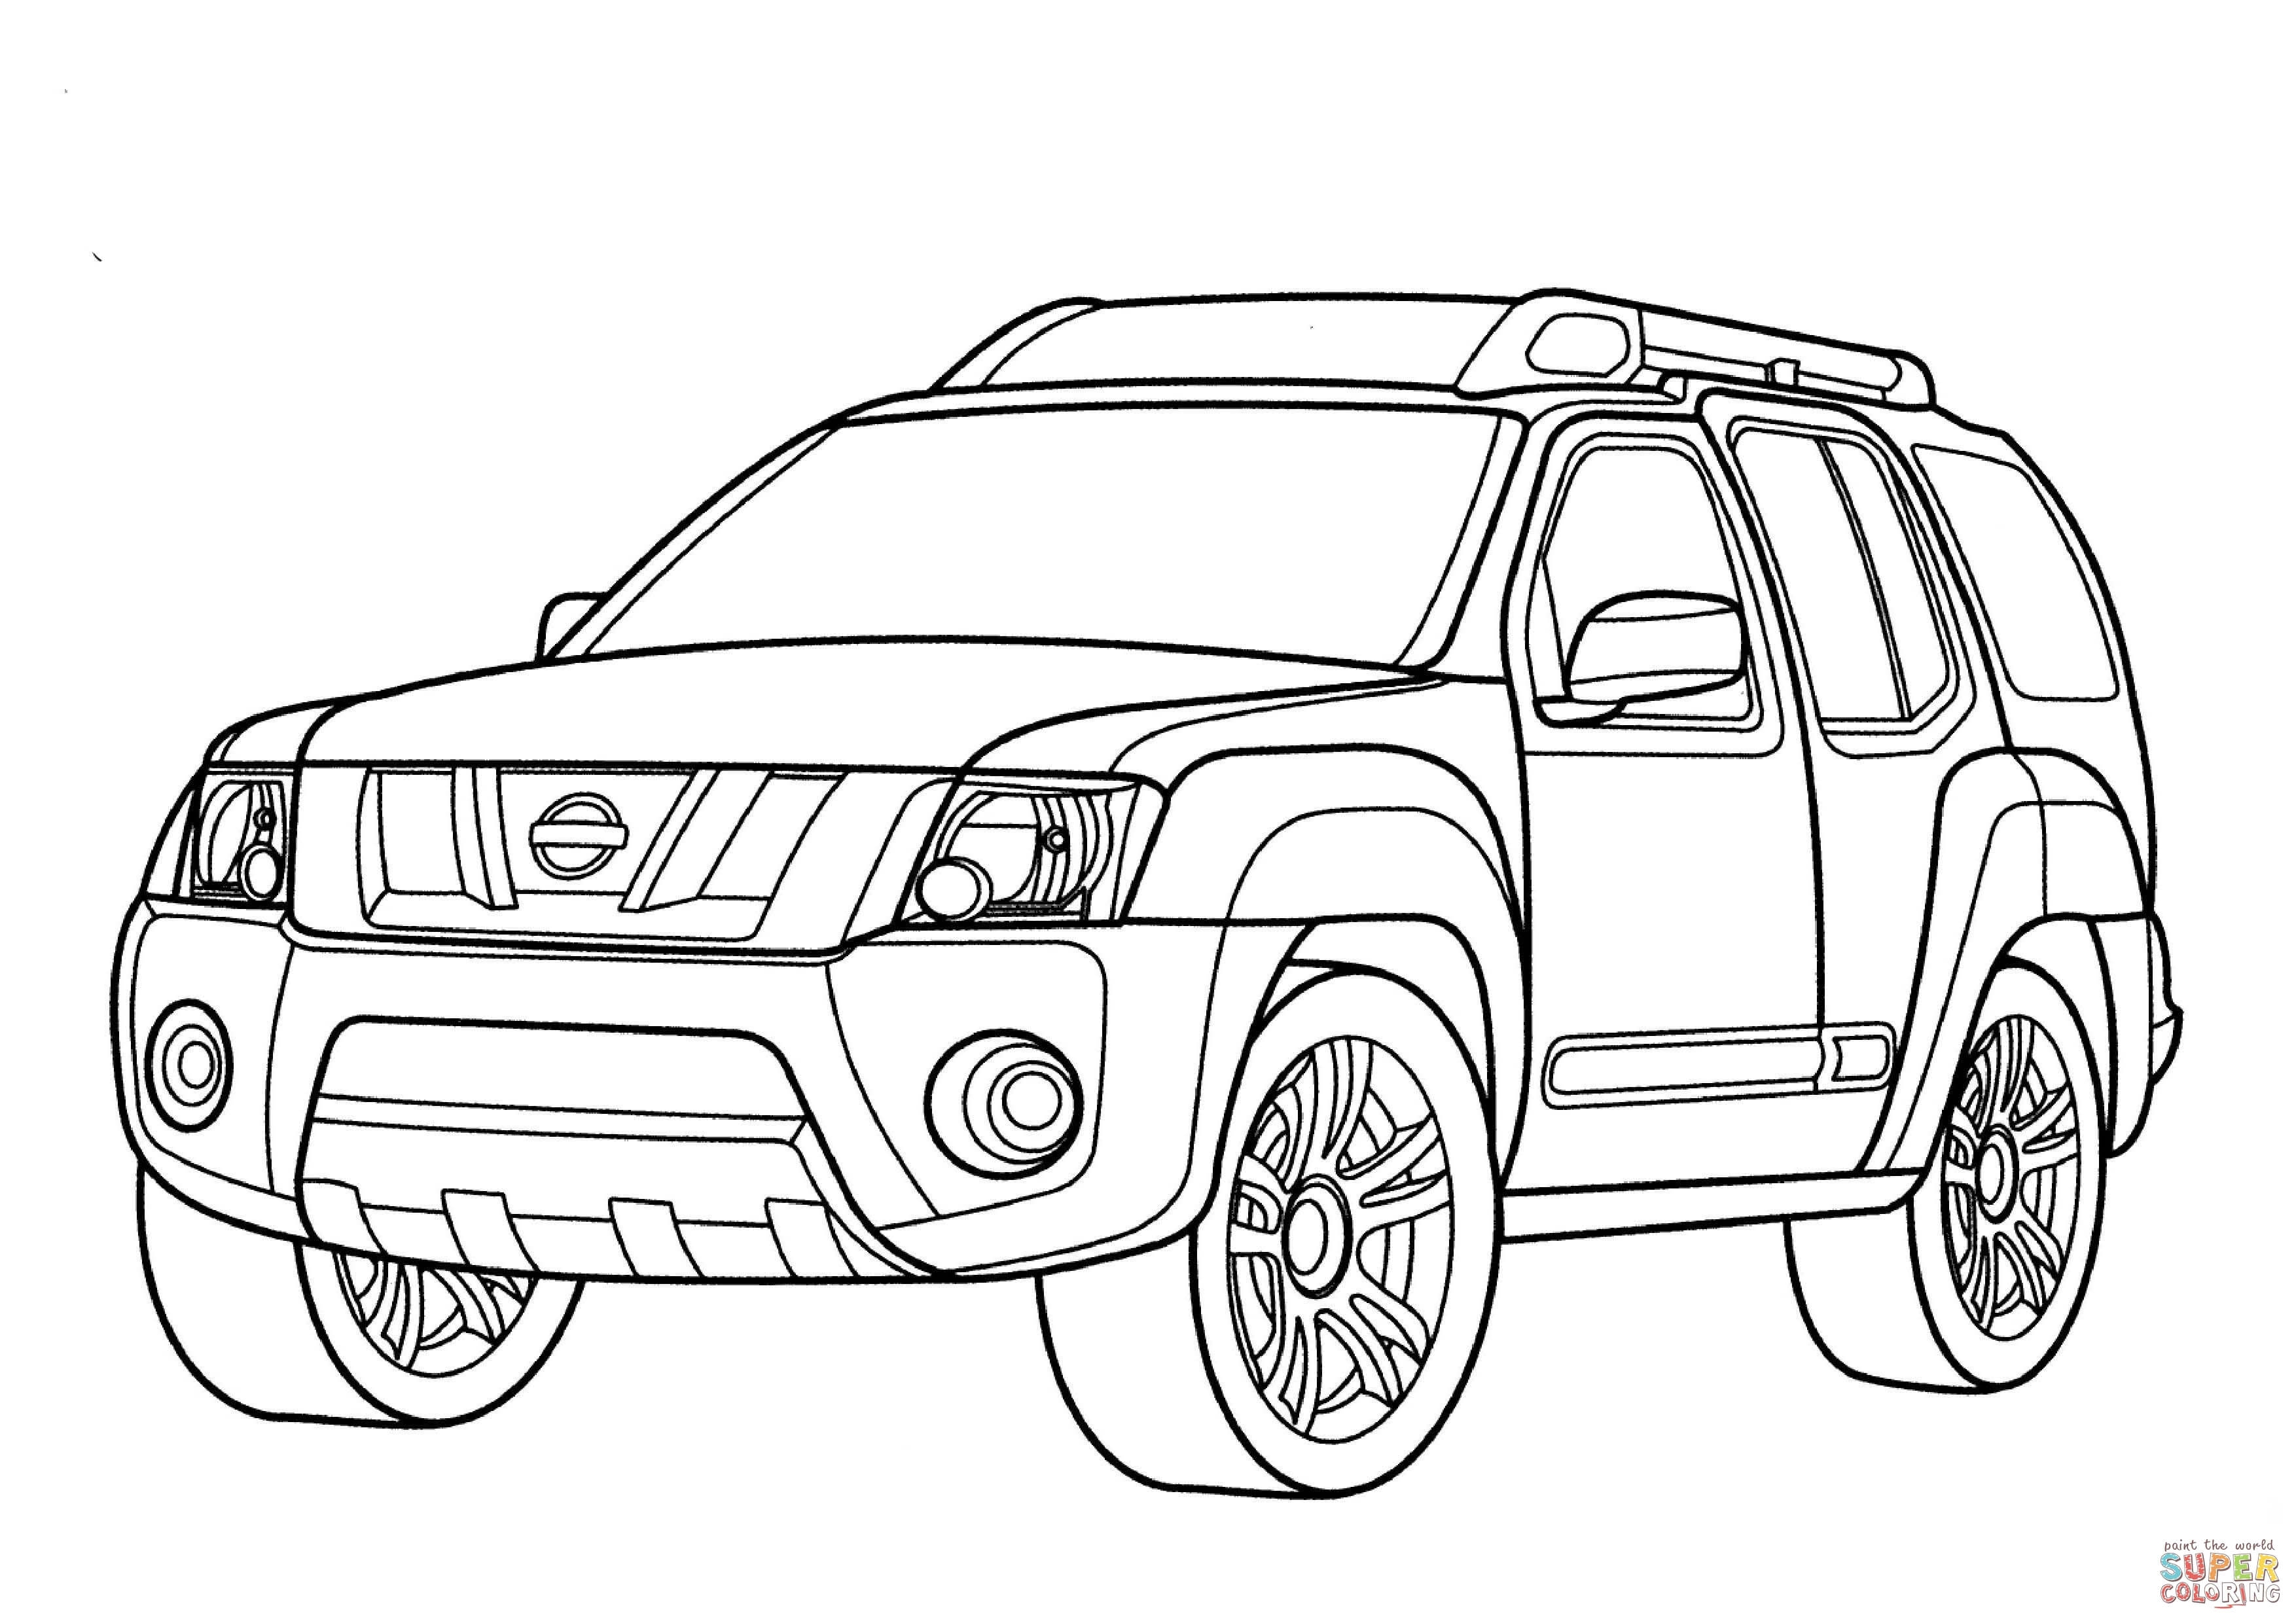 Gtr Coloring Pages At Getdrawings Com Free For Personal